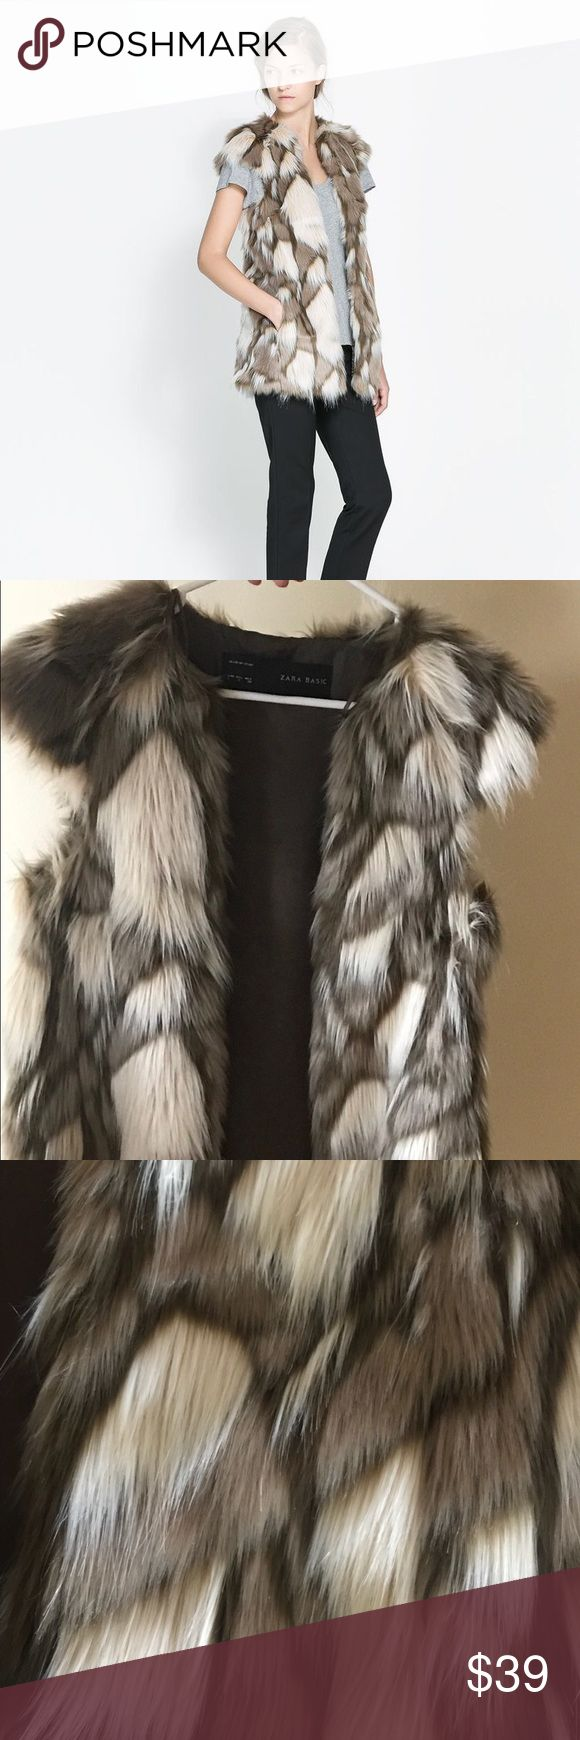 Zara Long Fur Waistcoat Zara Long Fur Waistcoat in size Small. Worn two times and in like new condition. Zara Jackets & Coats Vests